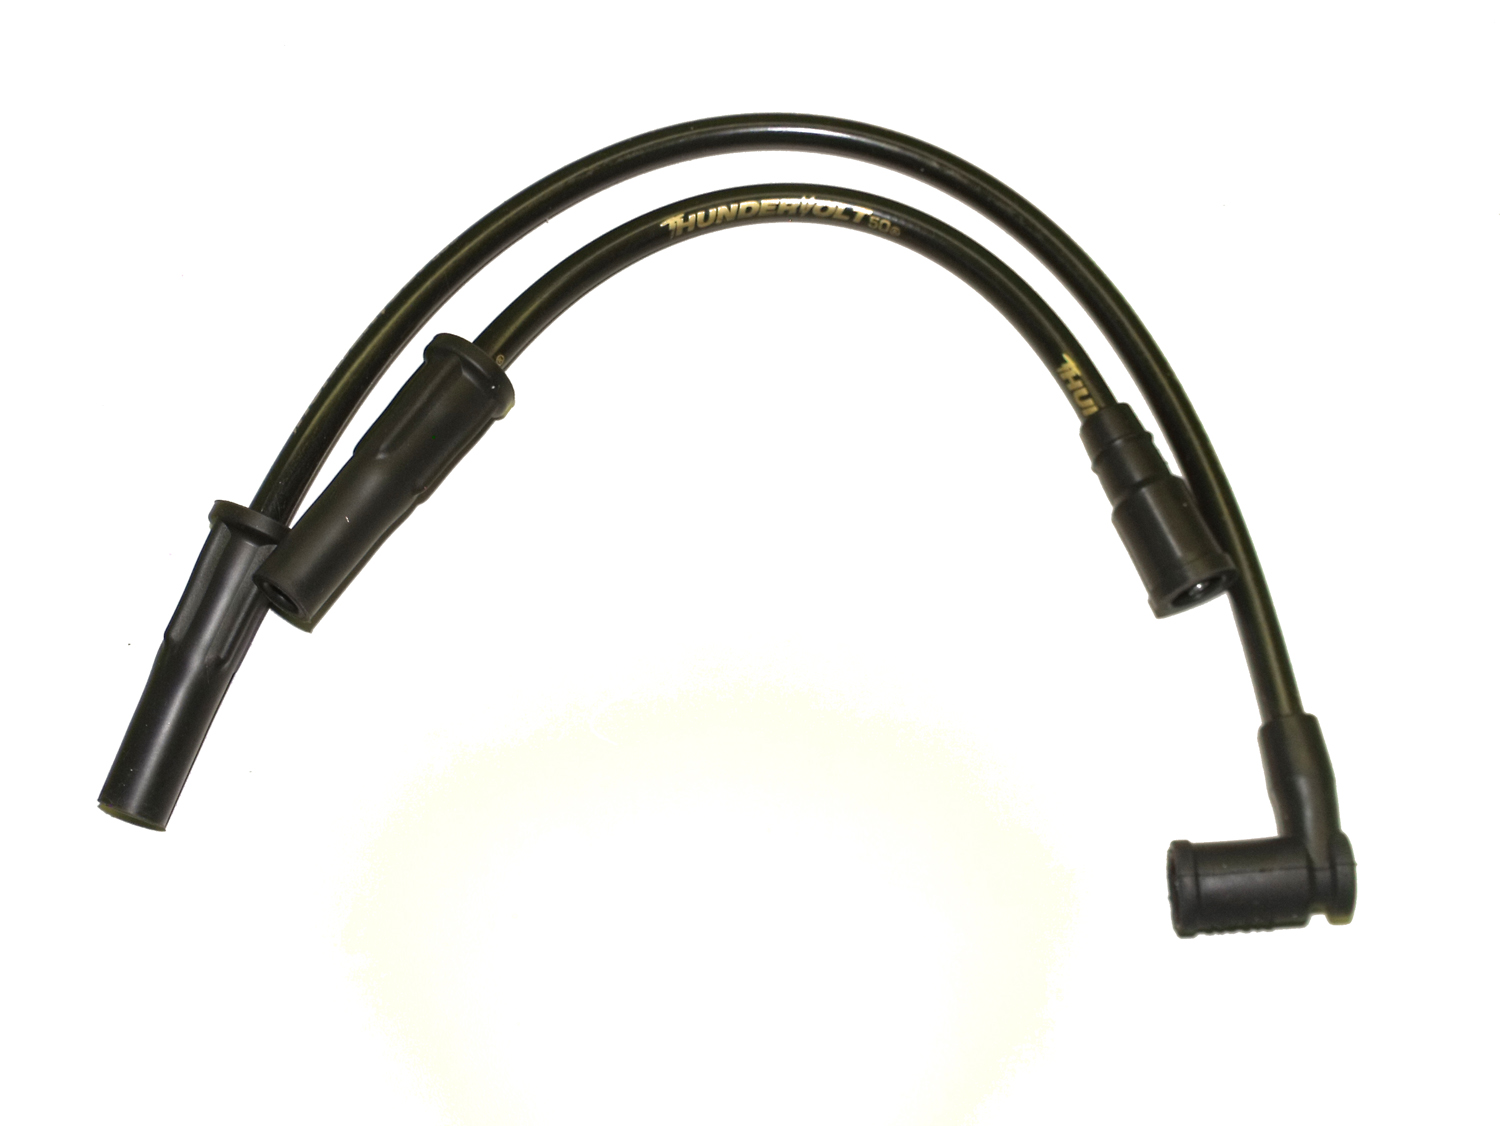 10.4 mm Spark Plug Wires 02-07 Ultra High Performance High Performance Spark Plugs And Wires on